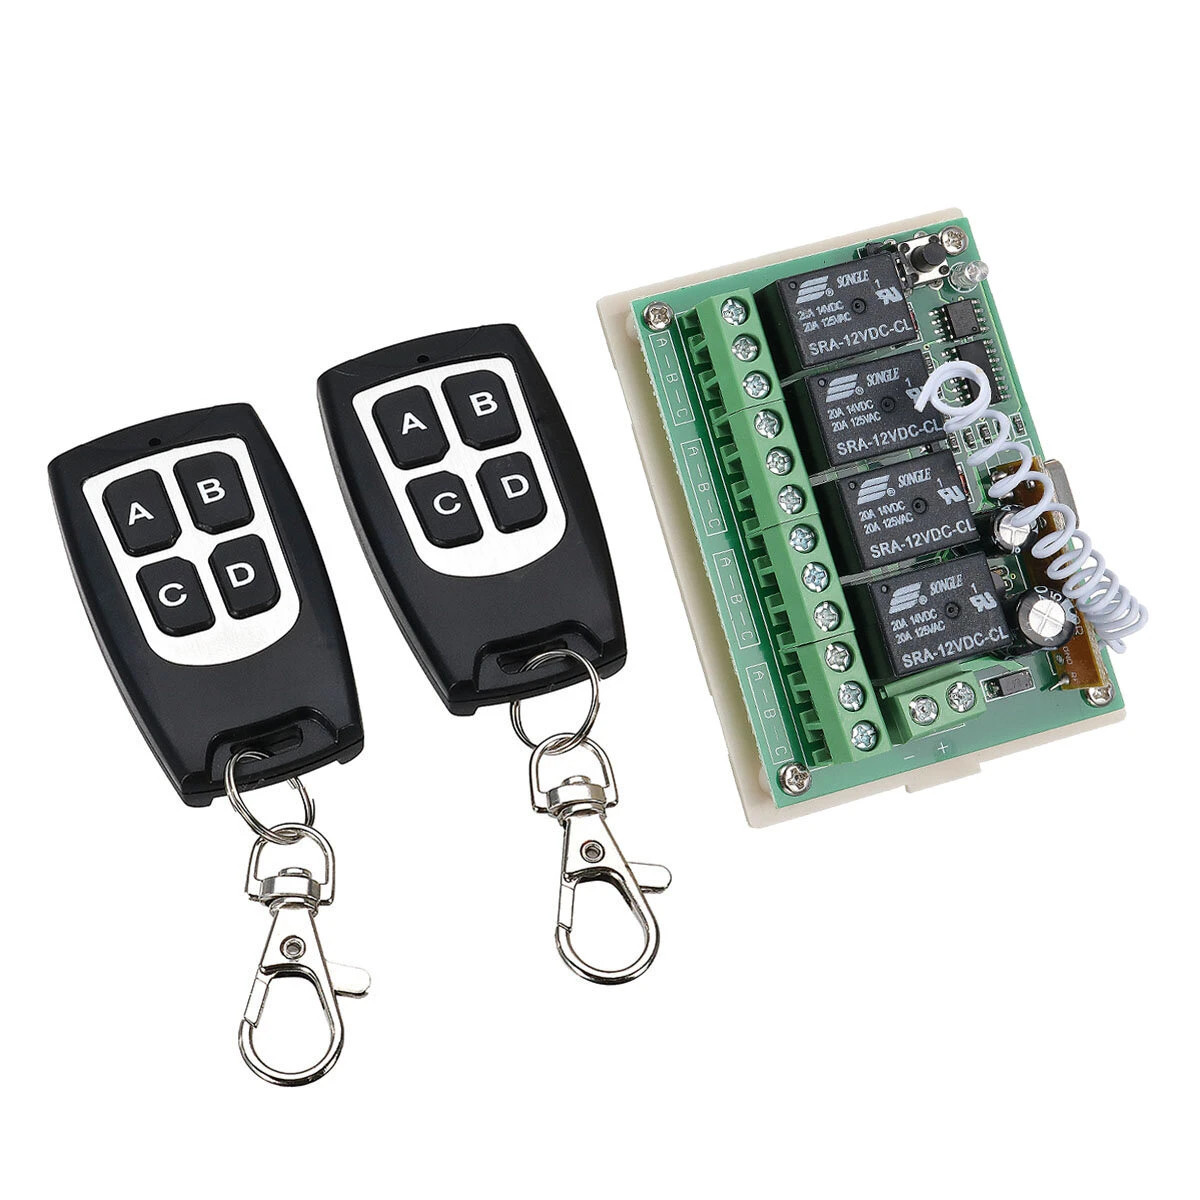 12V 4CH Channel 433Mhz Wireless Remote Control Switch With 2 Transmitter